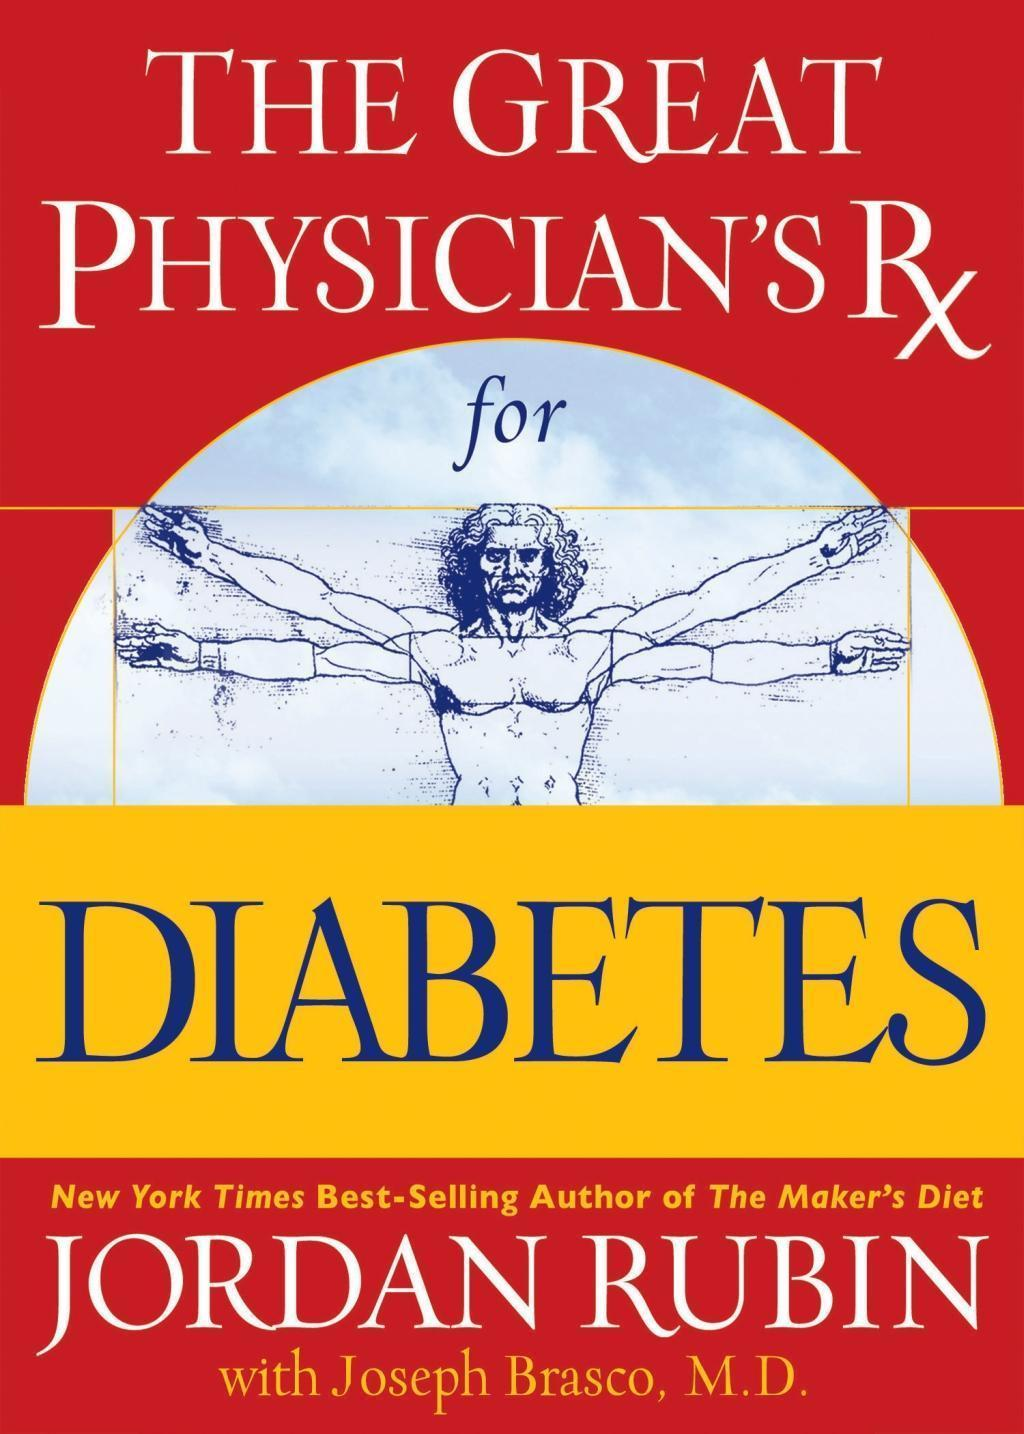 The Great Physician's Rx for Diabetes